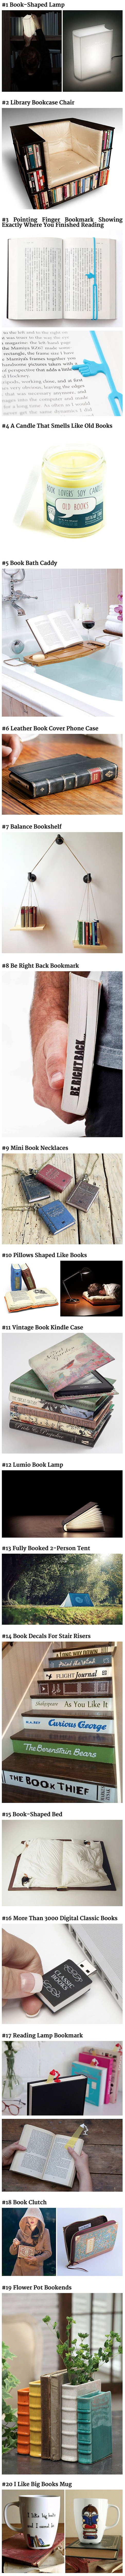 Here are some cool items that book fanatics would love. I want all of these so badly! Book Pillow!